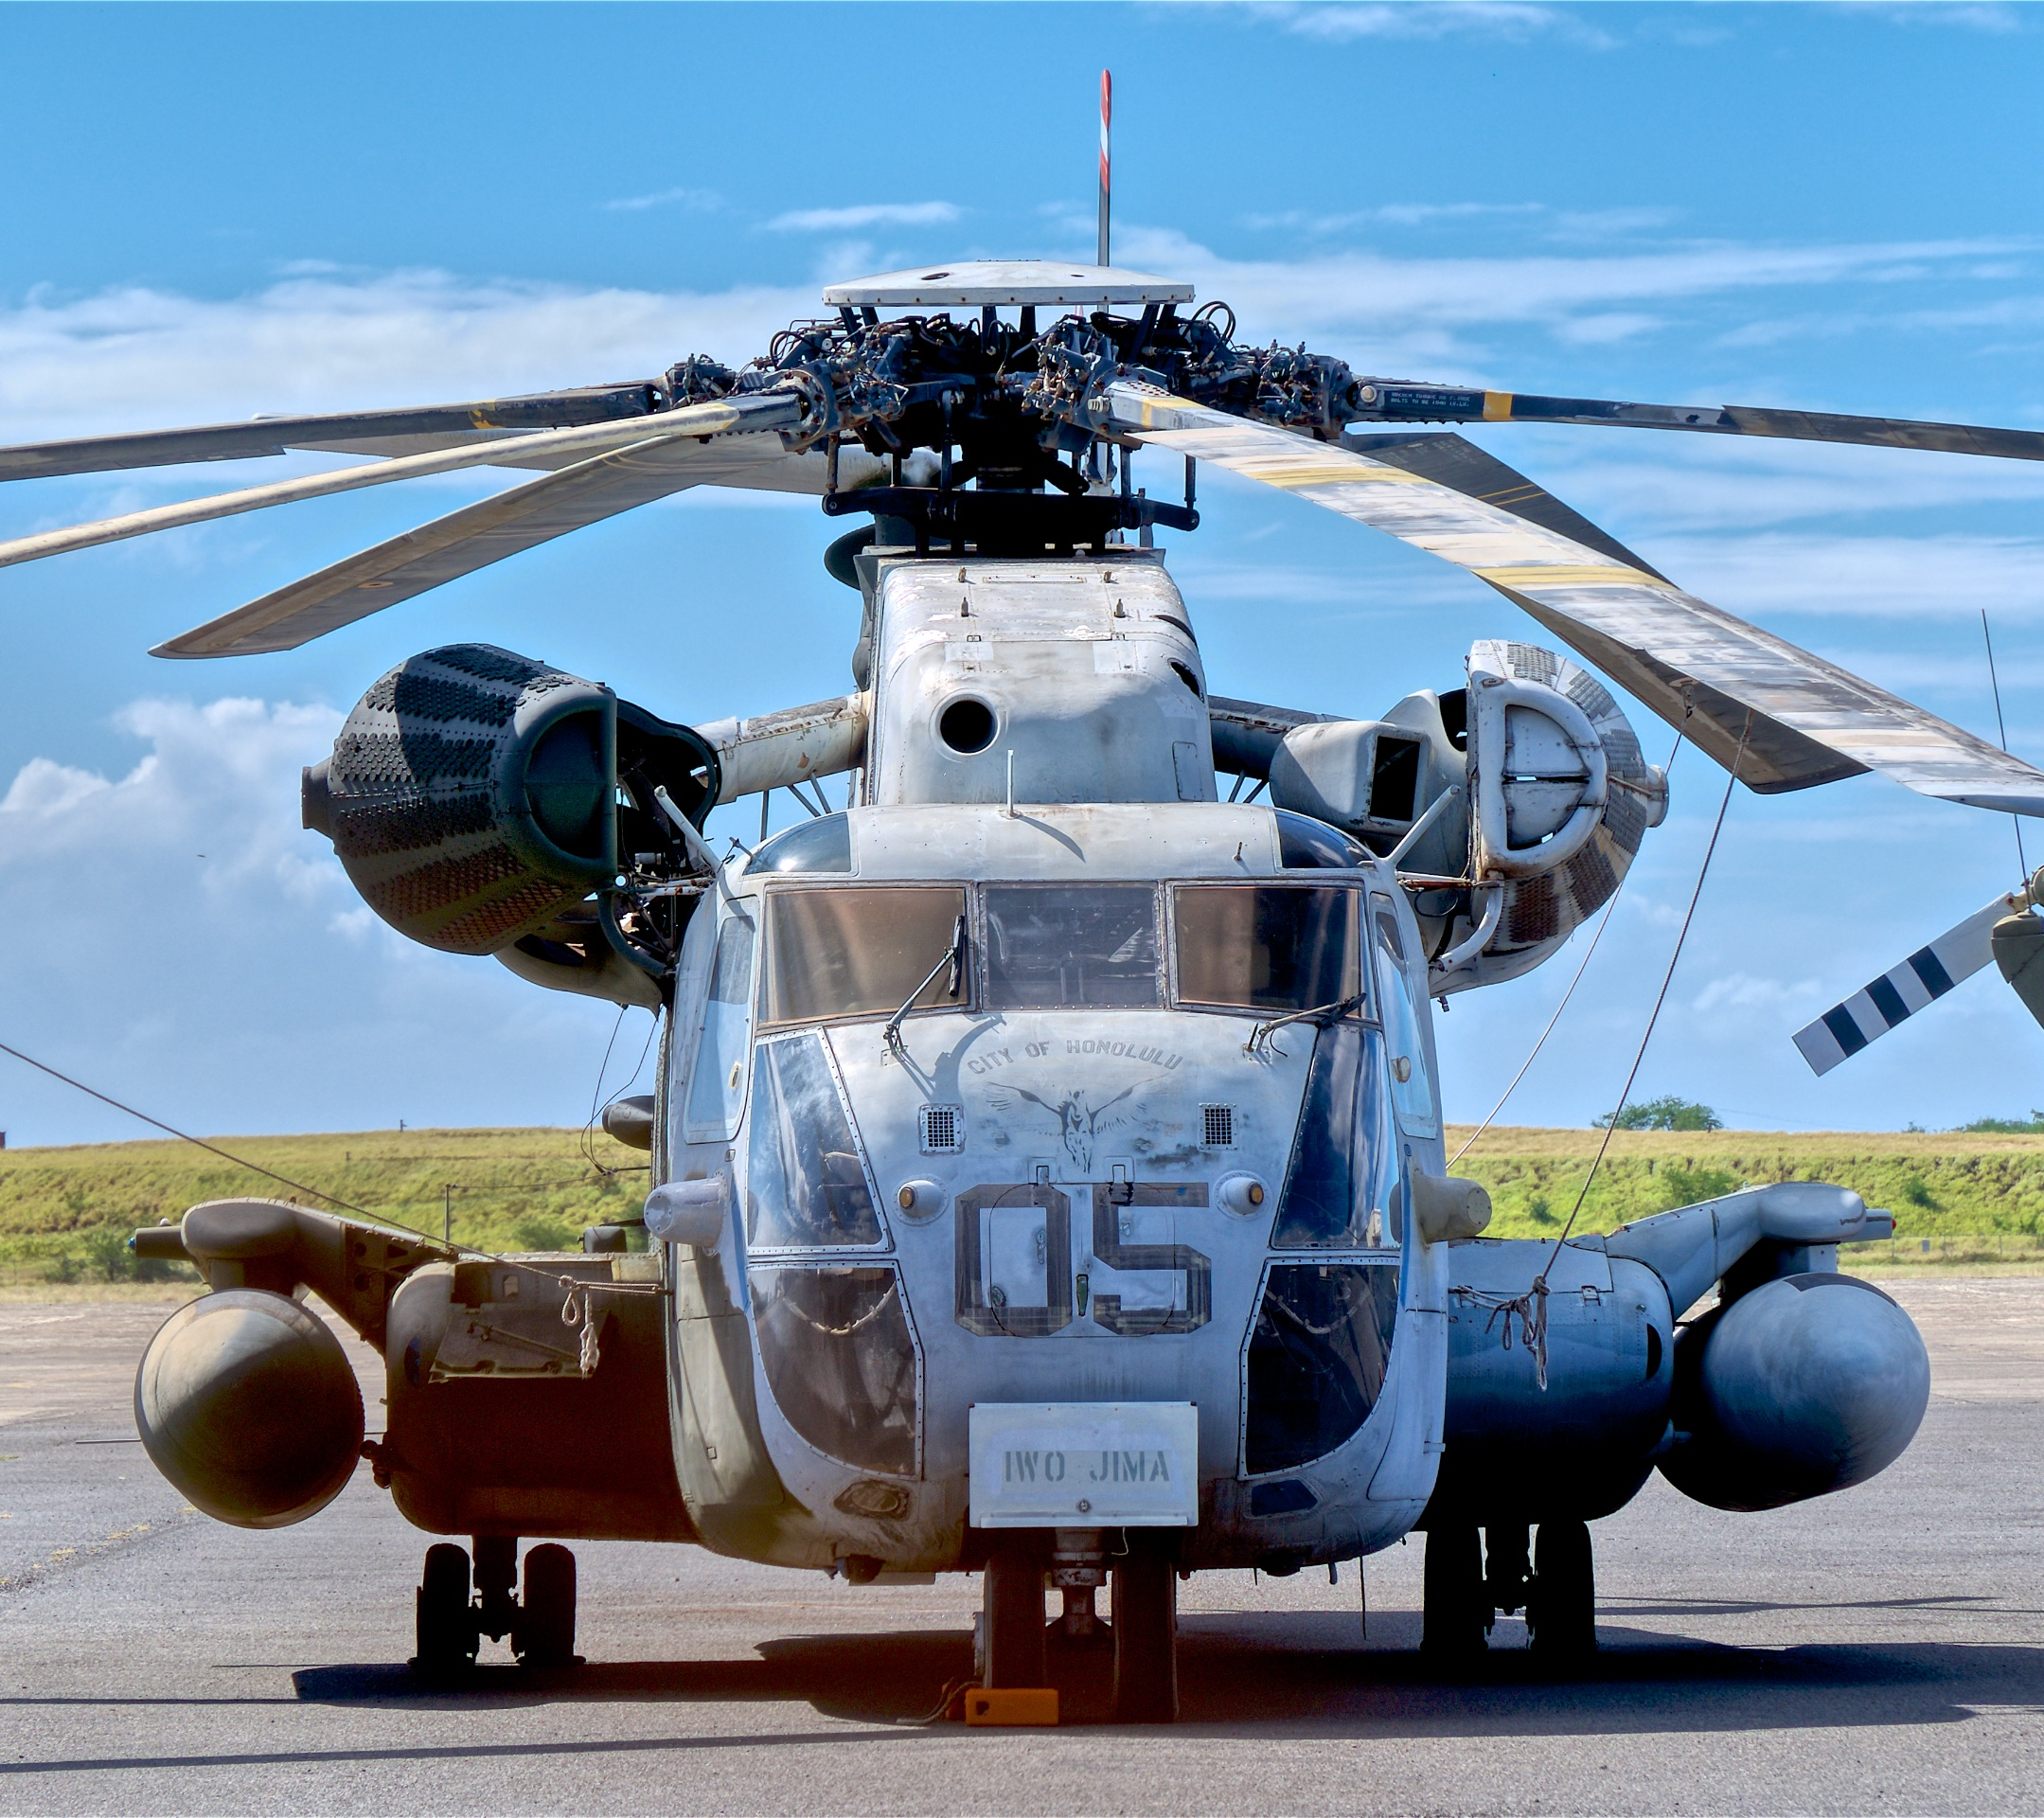 The brutish Sikorsky CH-53D Sea Stallion is the largest helicopter in the world outside of Russia. This one performed minesweeping duties, did presidential support work, and flew in Desert Storm. © Hayman Tam - Global Aviation Resource